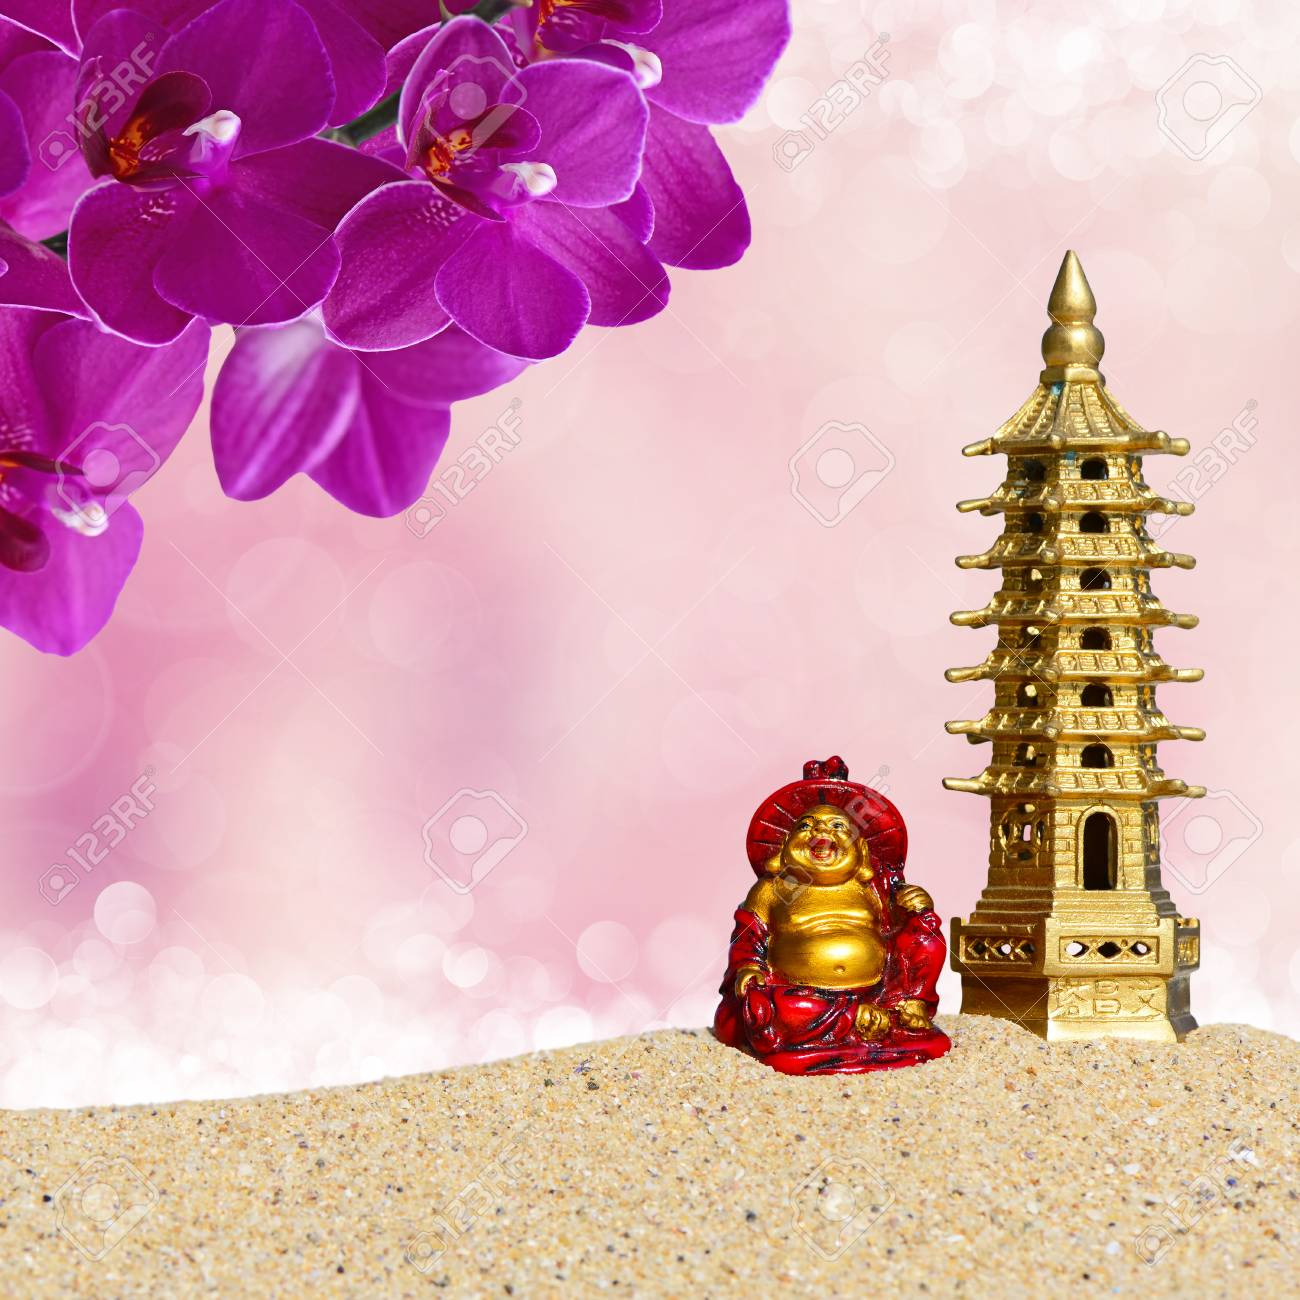 Laughing Buddhaorchid Flowers And Seven Storied Pagoda In The